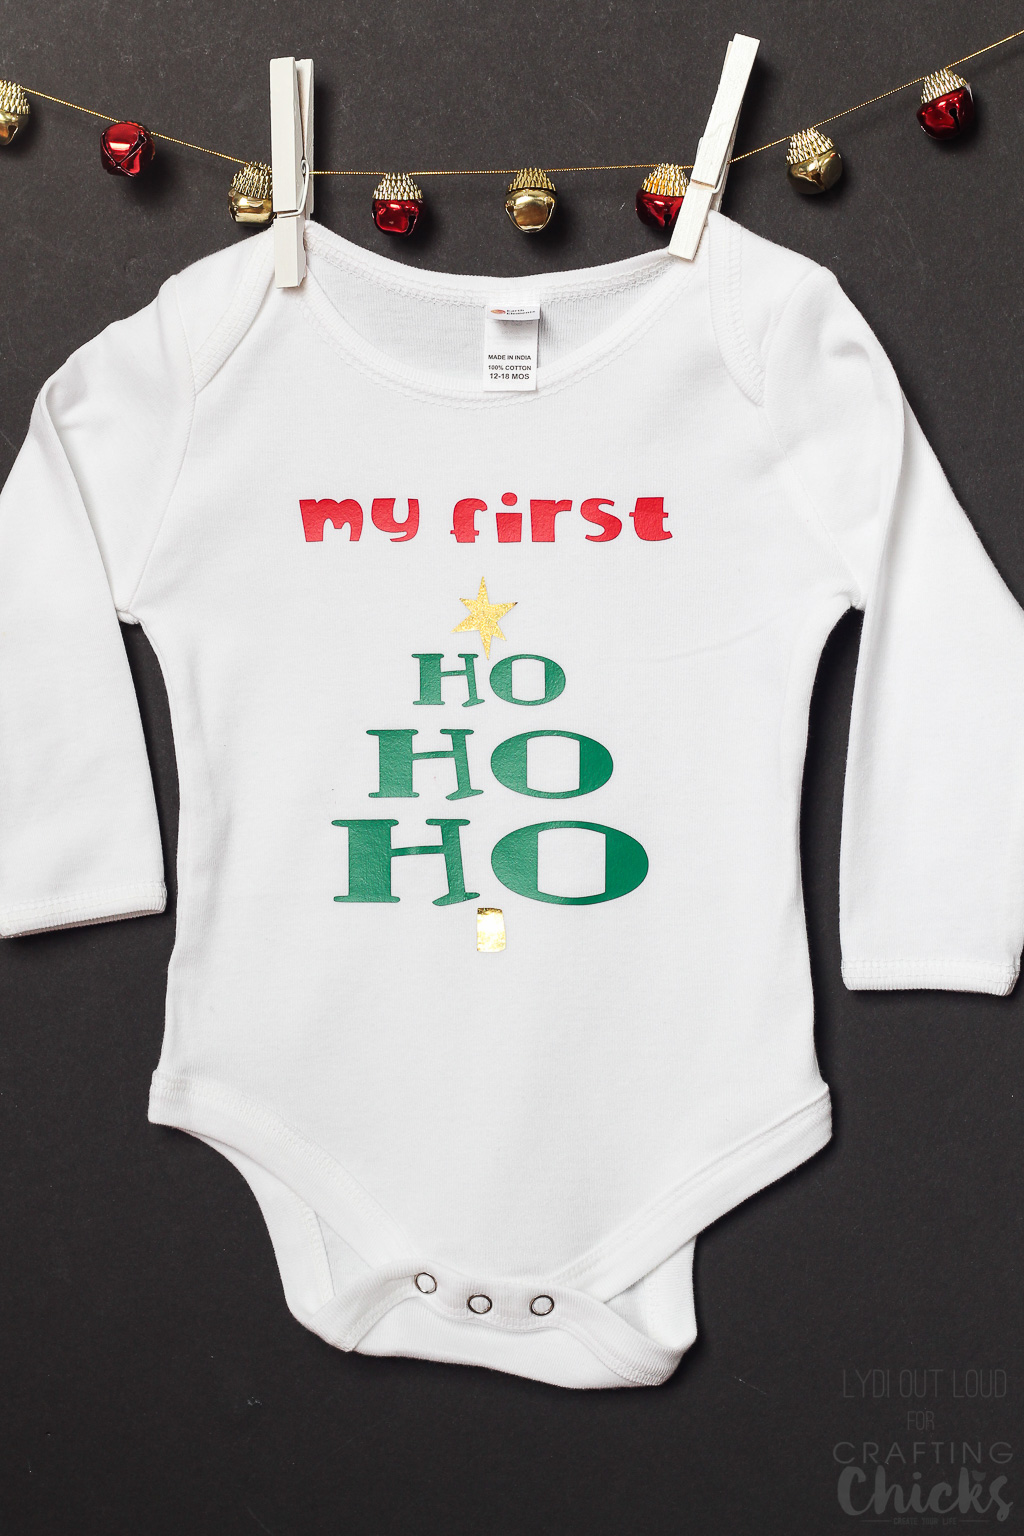 DIY Baby's First Christmas iron-on onesie #Christmasgiftideas #BabysFirstChristmas #DIYgiftideas #ironon